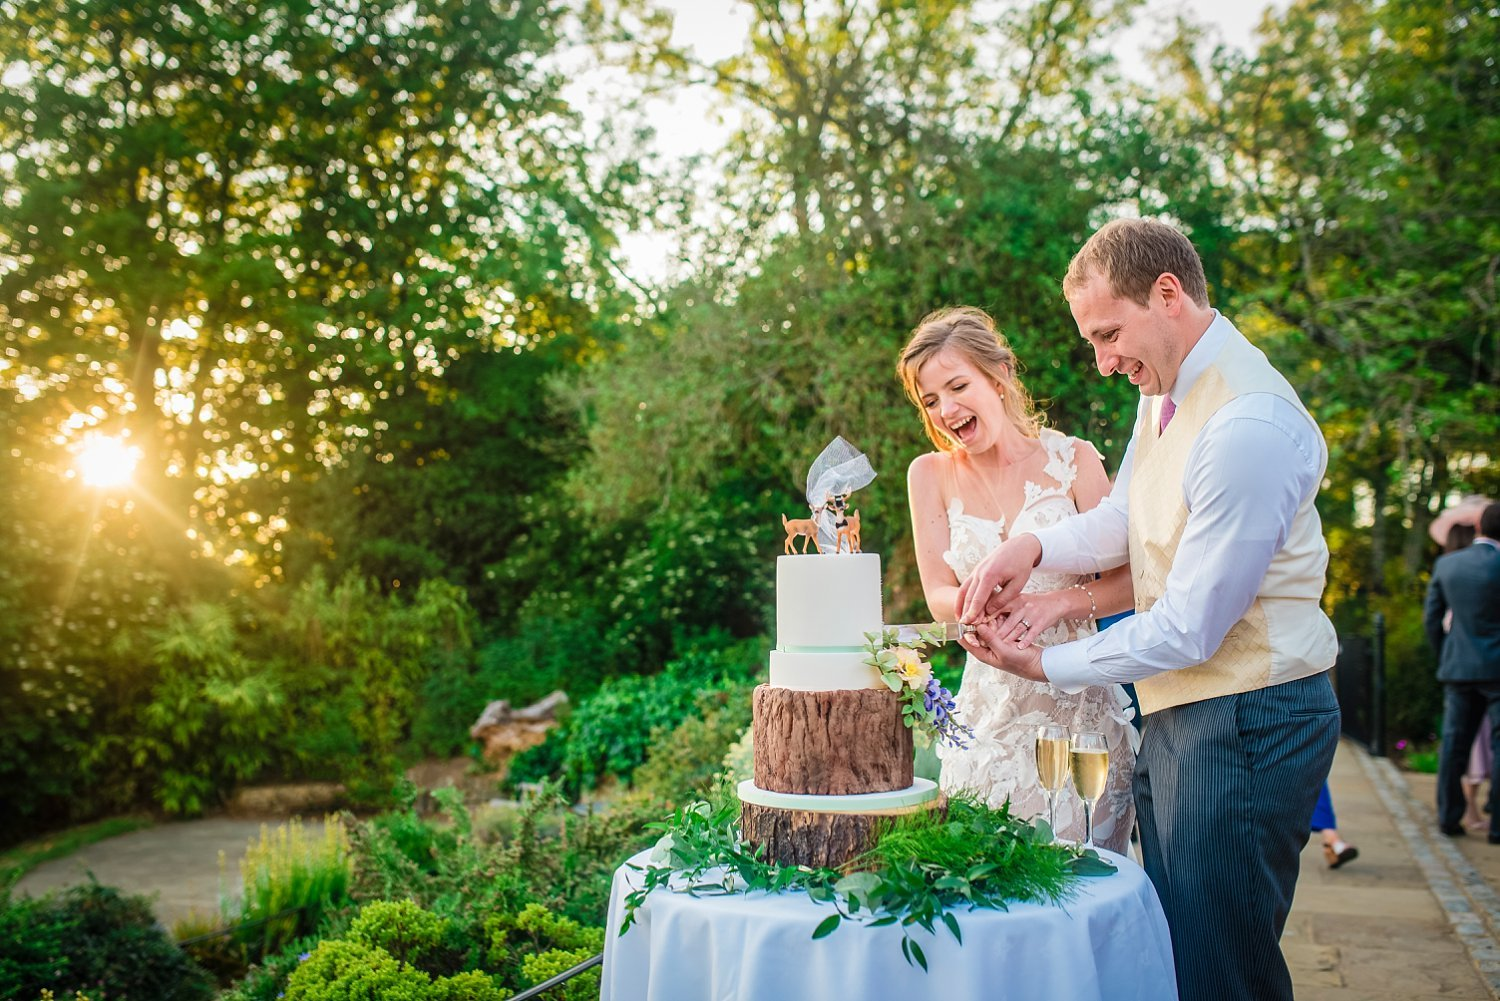 Fun-Filled wedding in Pembroke Lodge - bride and groom are cutting a cake outside